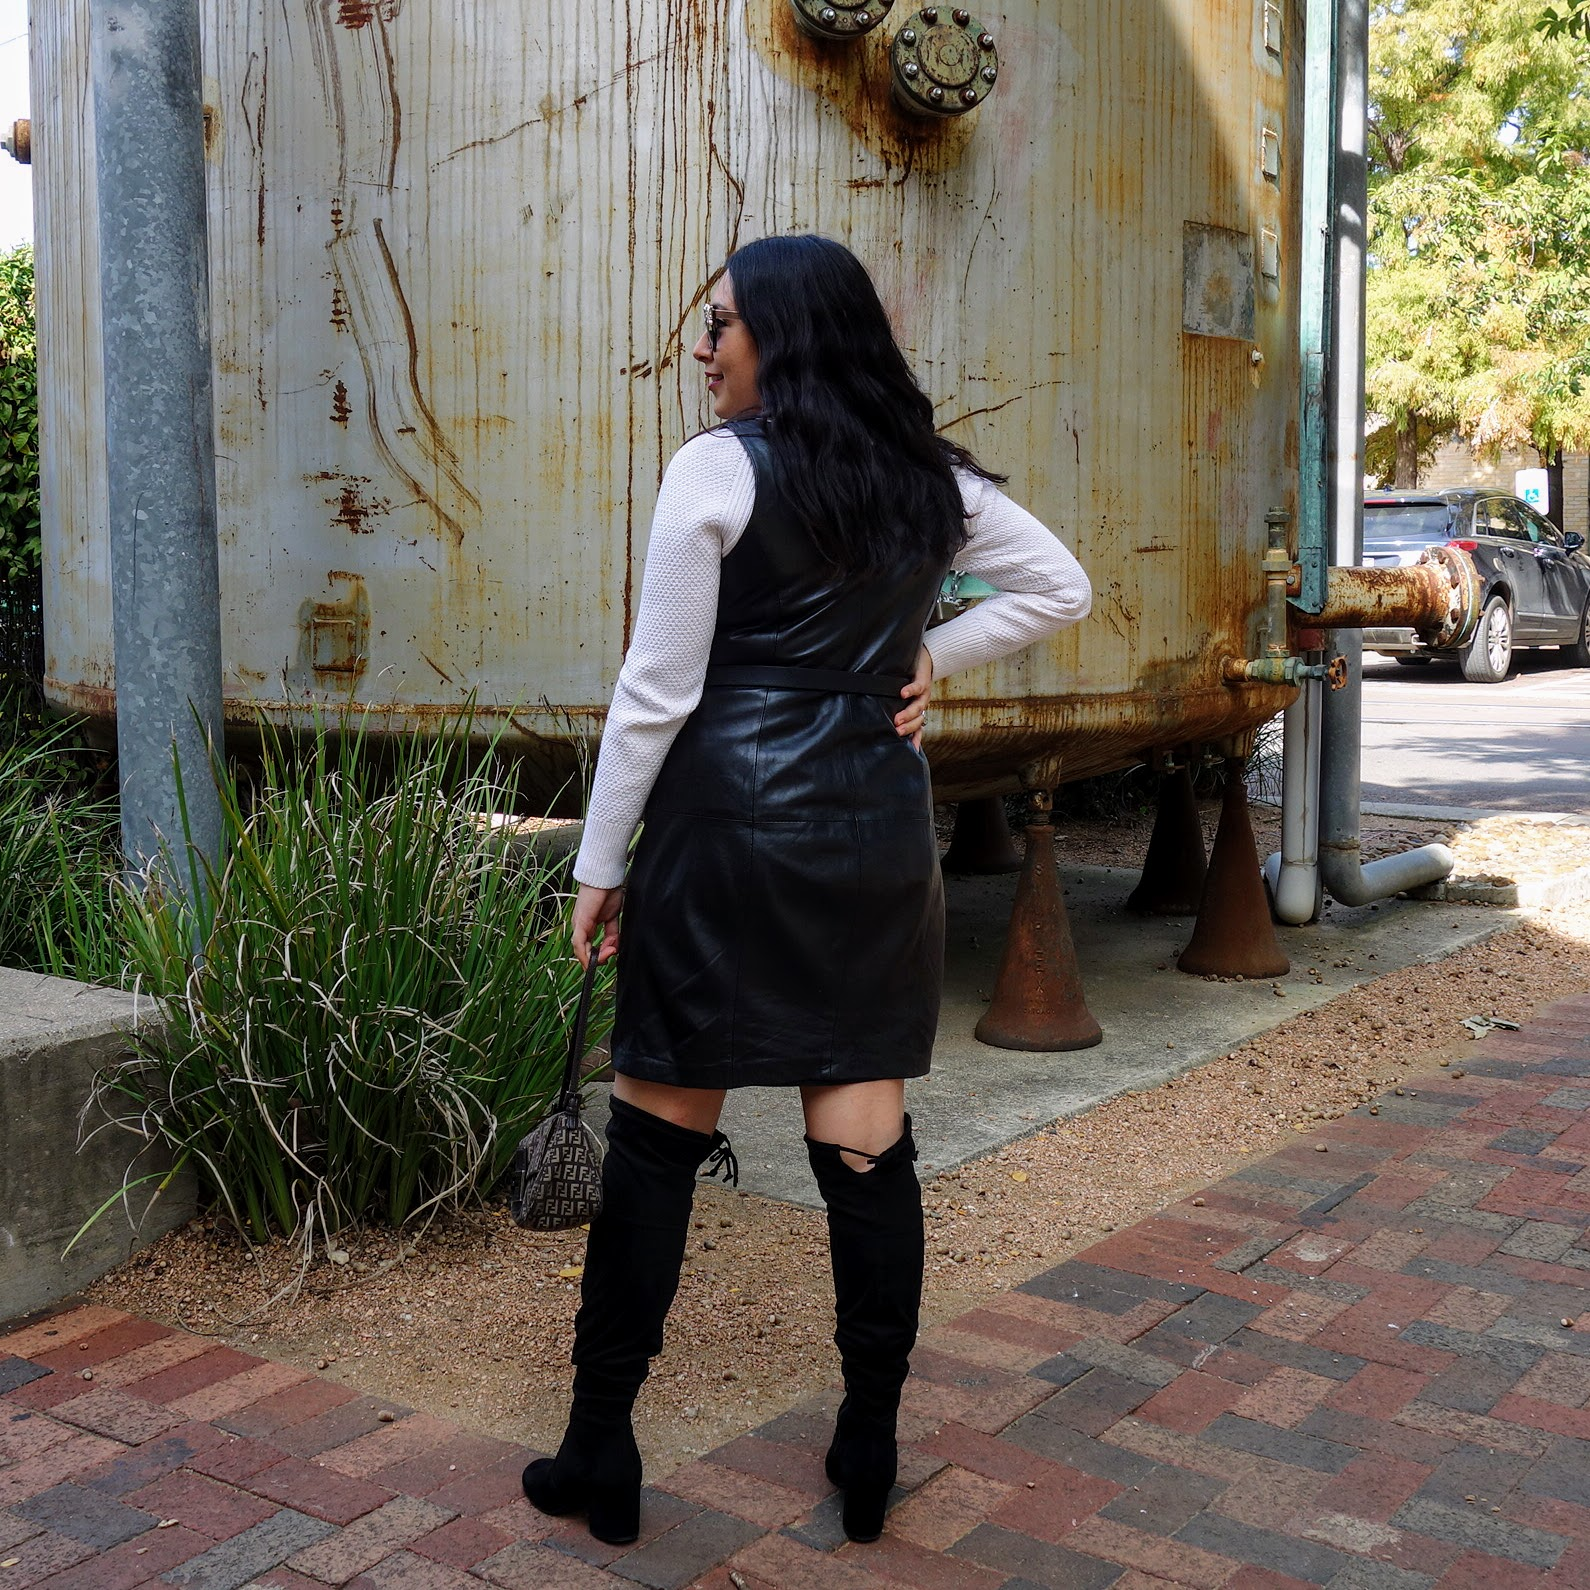 Leather Dress, Leather Overall, Leather Dress Outfit, Black Leather Dress Outfit